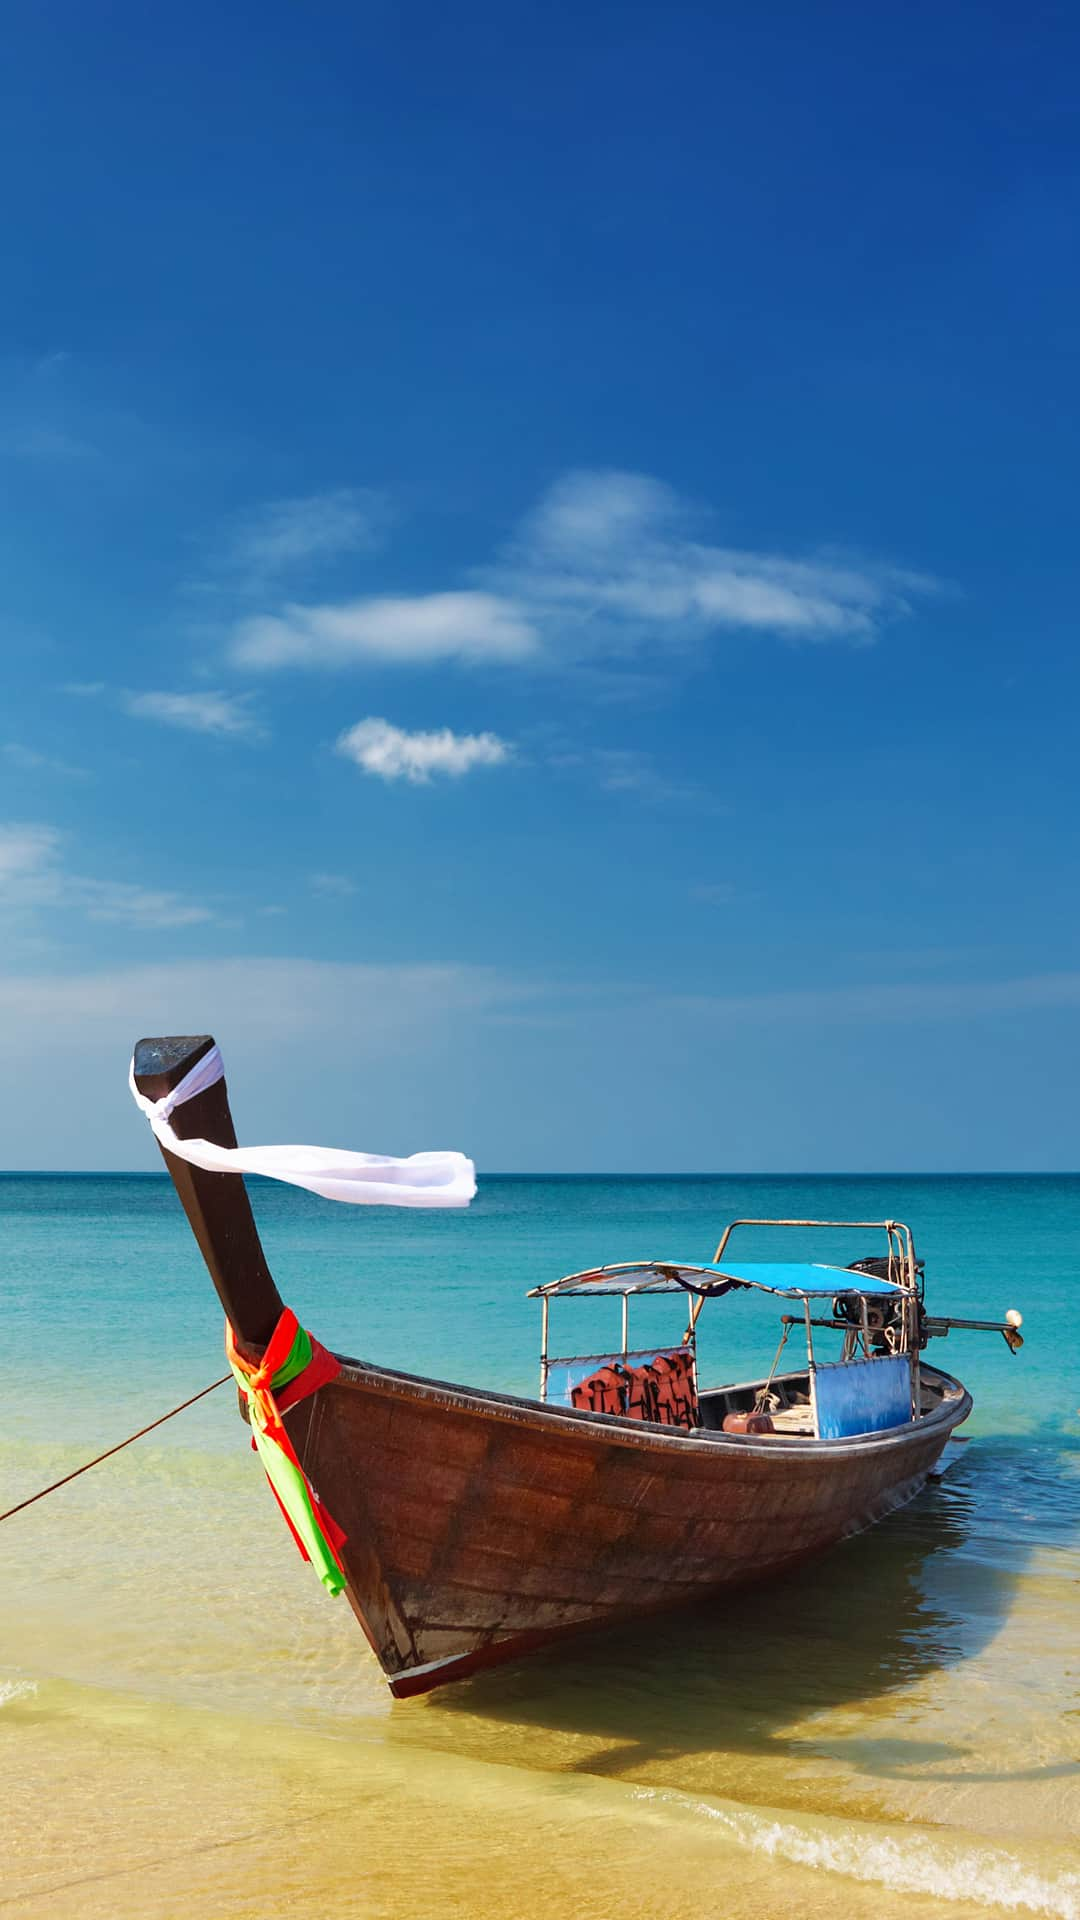 Thailand Beach Shore Boat Android Wallpaper